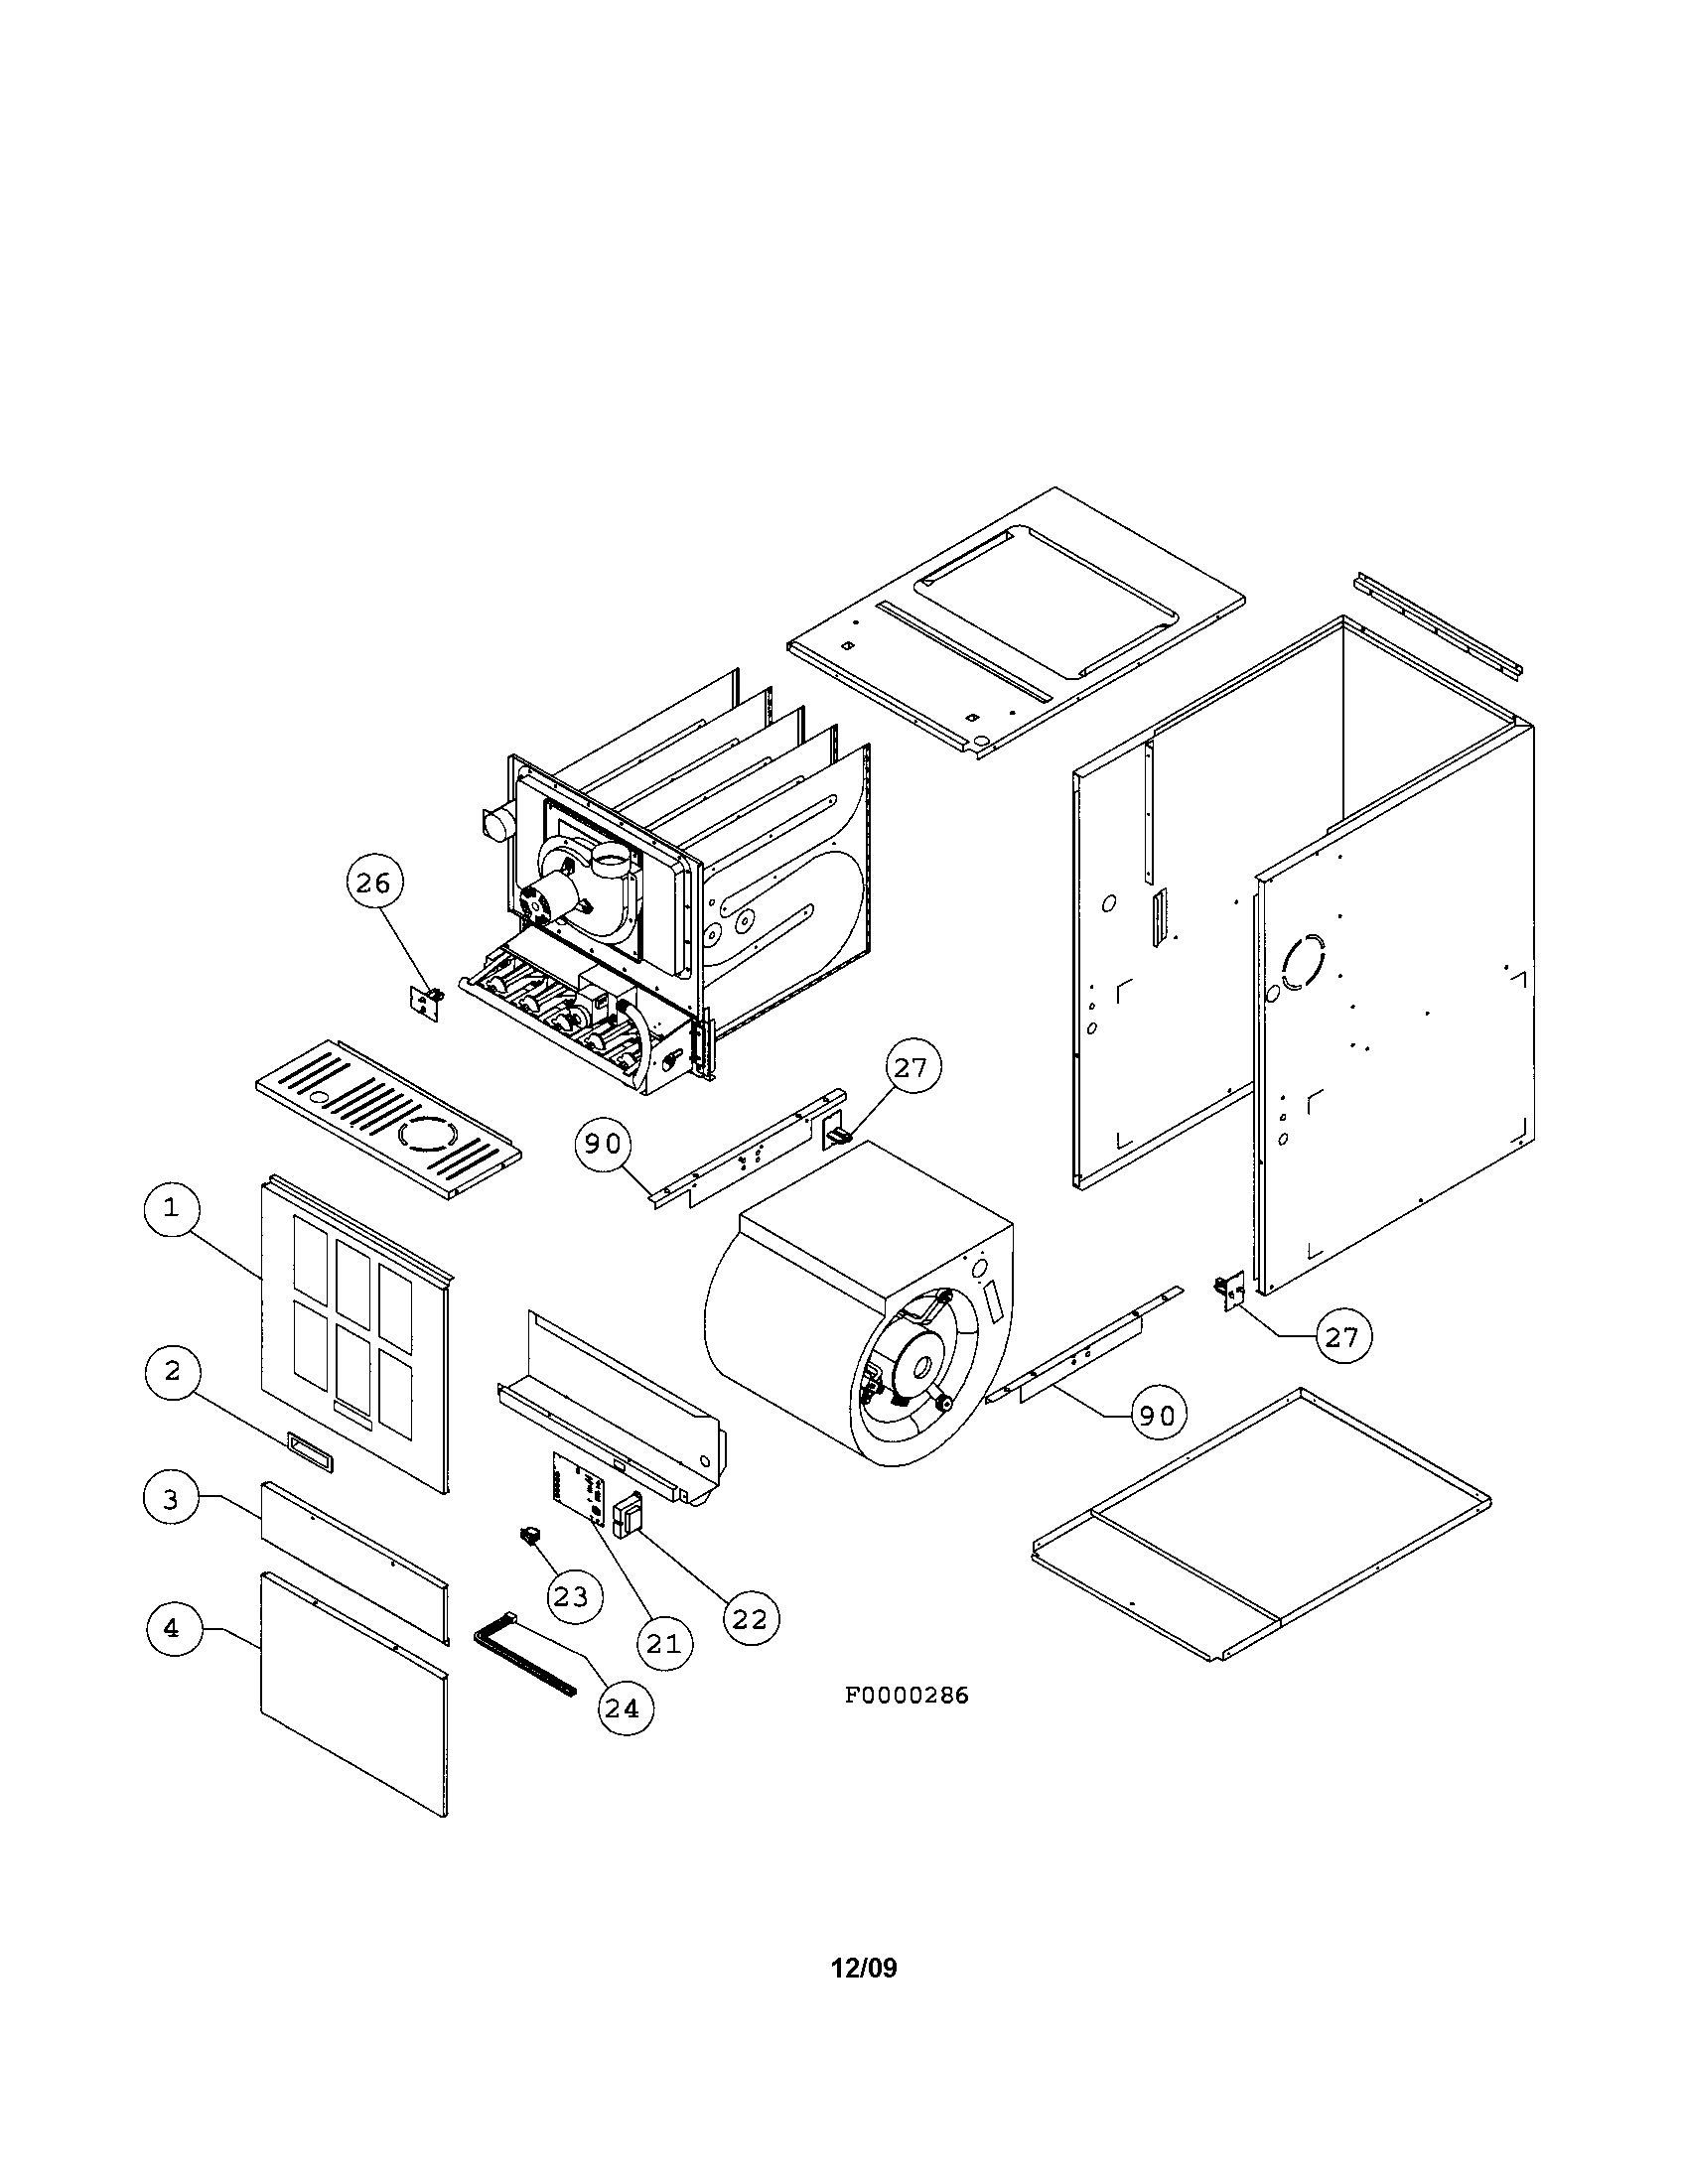 hight resolution of images of ducane furnace parts